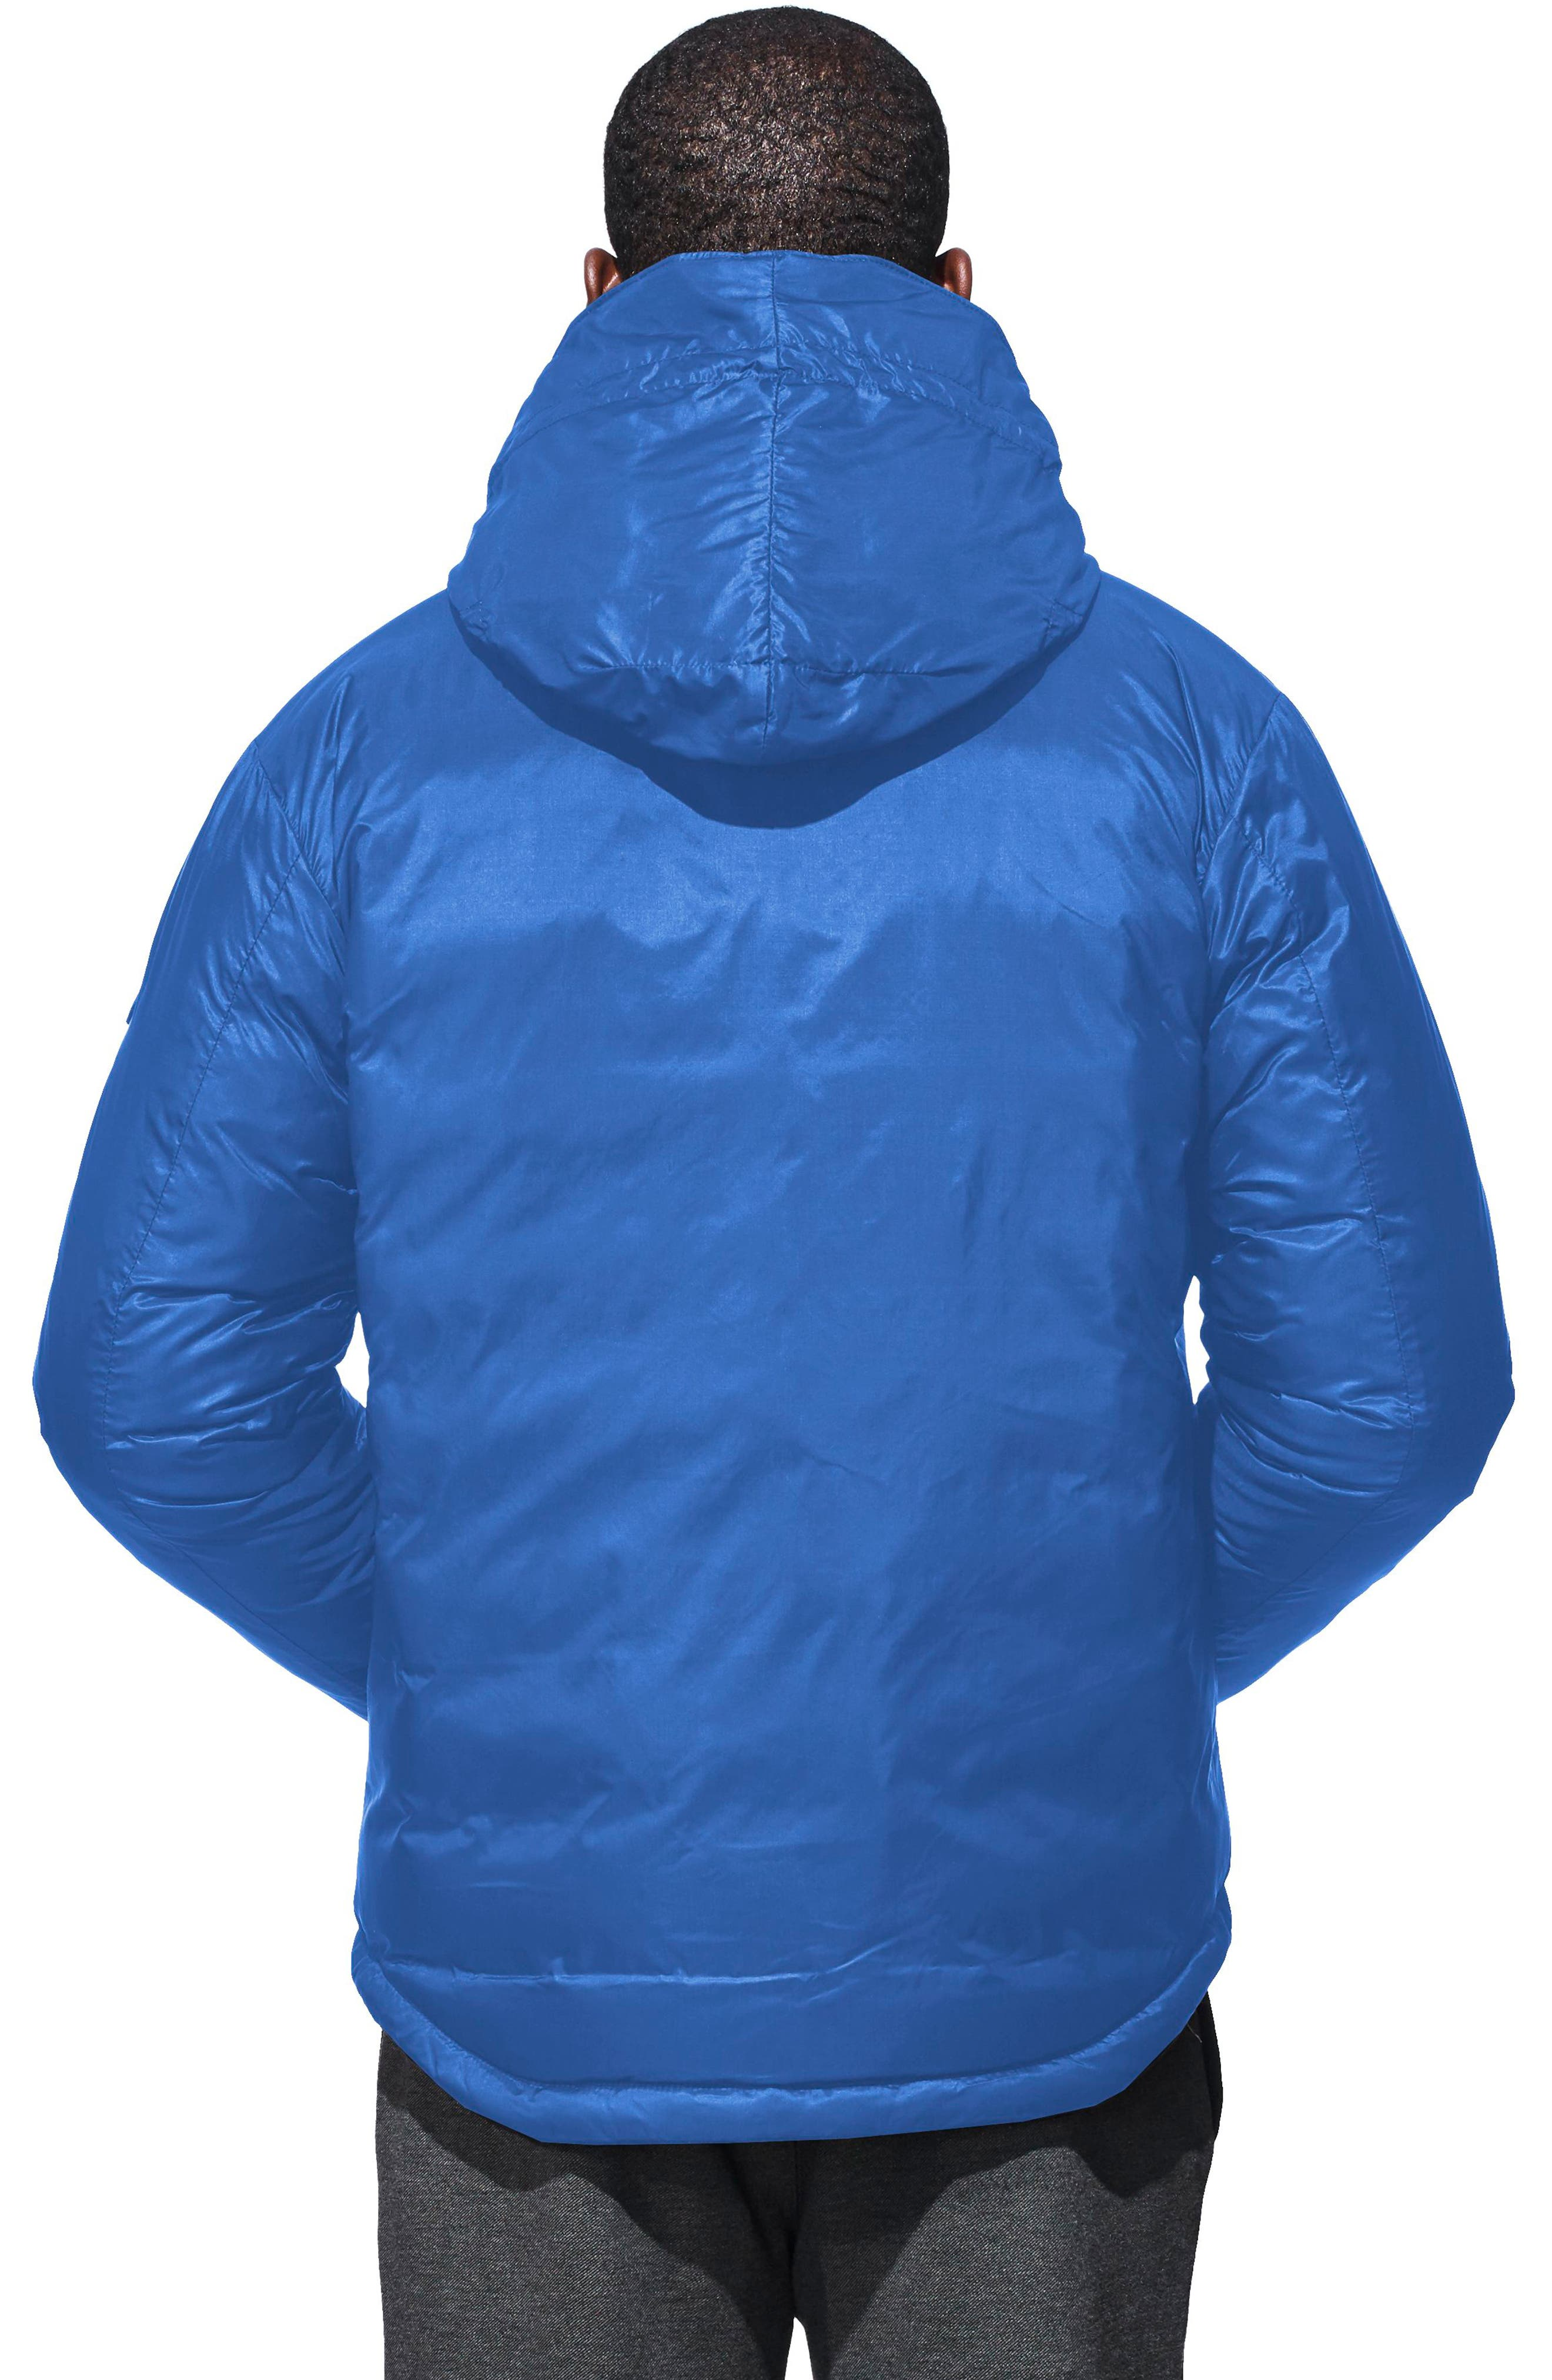 PBI Lodge Packable Down Hooded Jacket,                             Alternate thumbnail 2, color,                             Royal Blue